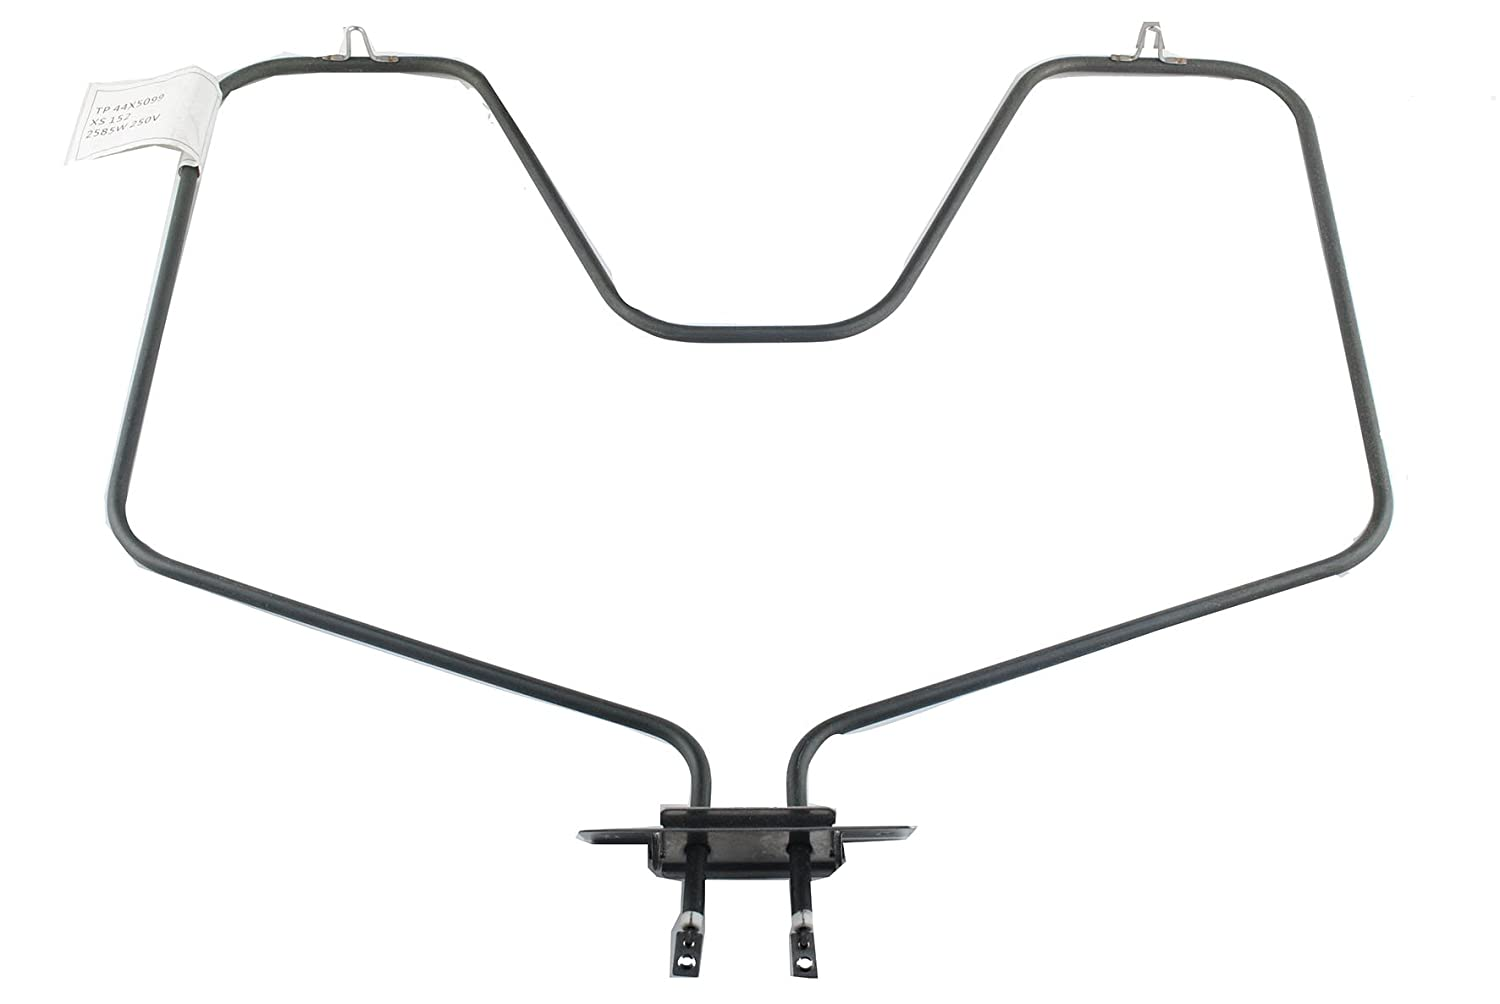 Wadoy WB44X5099 Oven Heating Bake Element Replacement for Conventional GE and Hotpoint Oven Stove Range